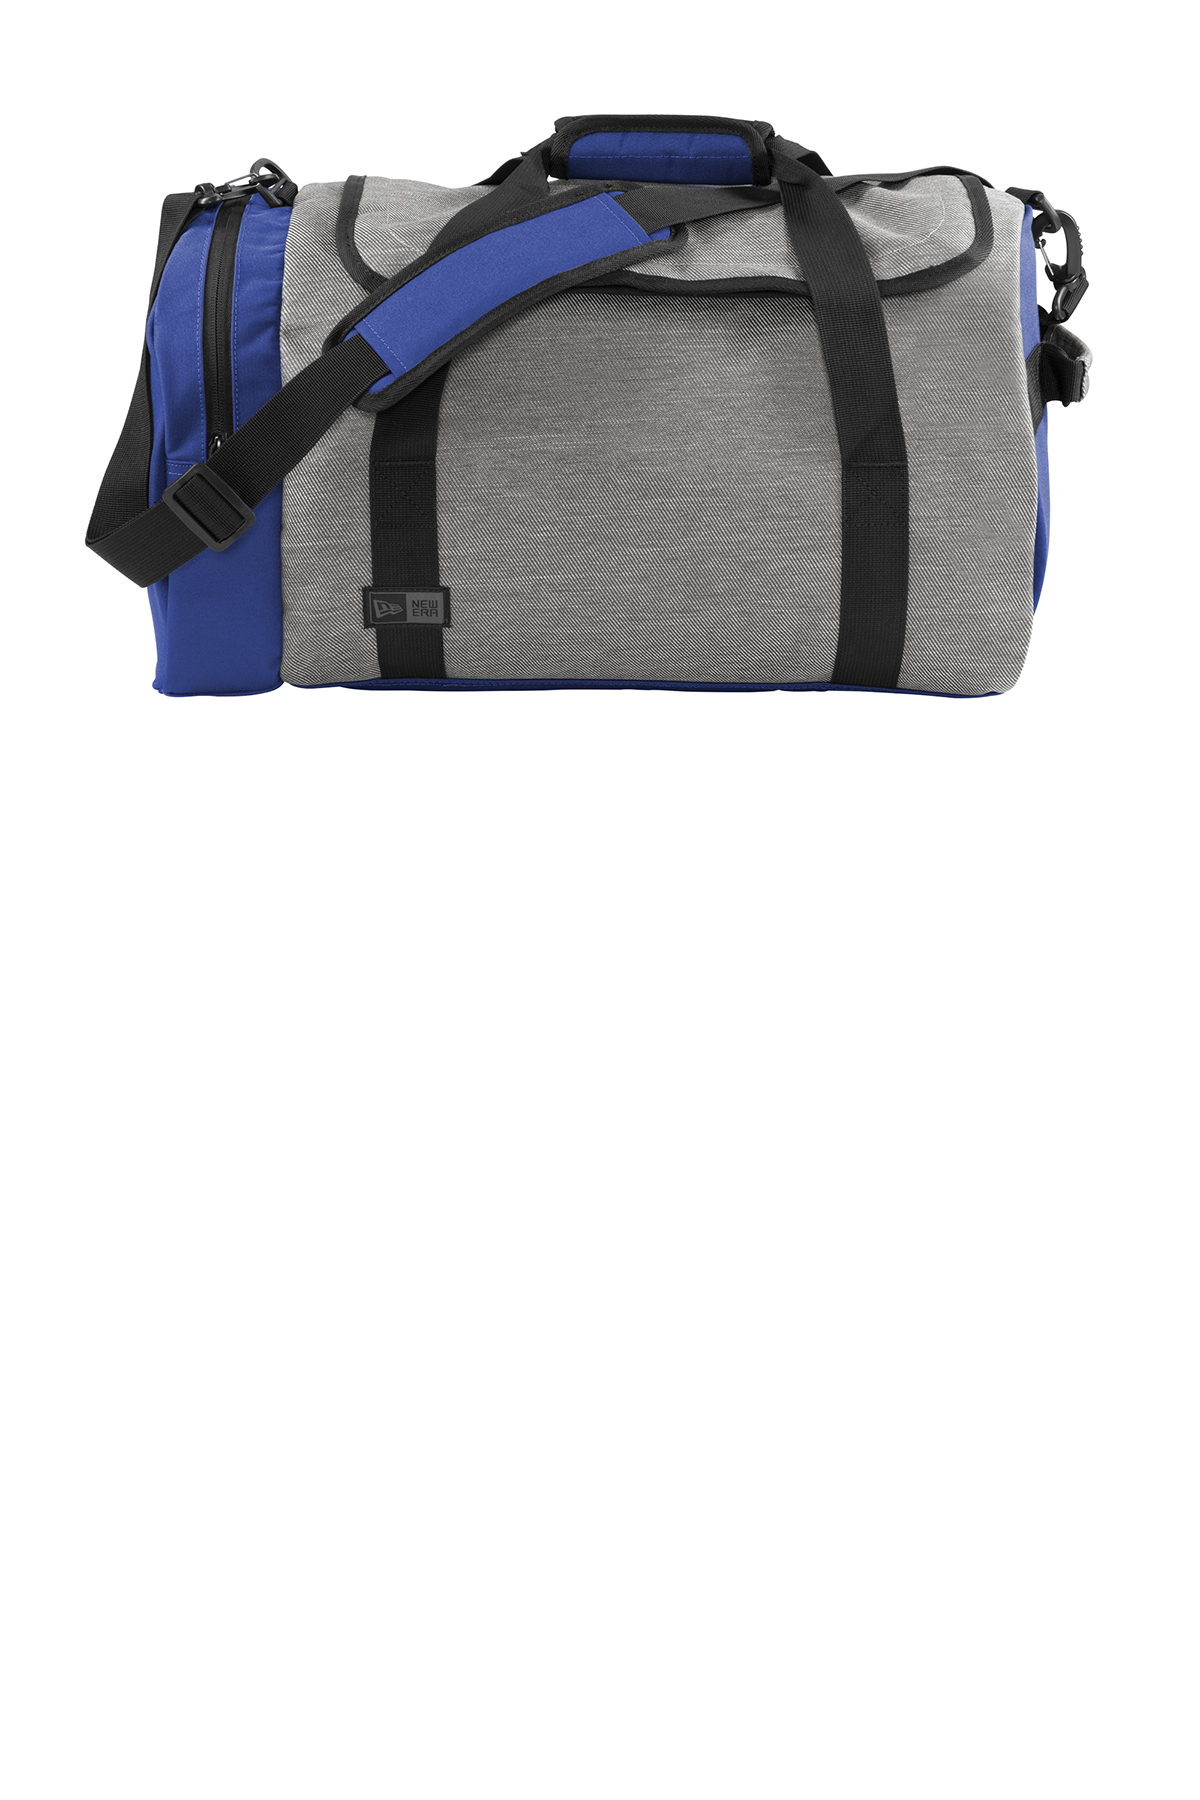 New Era NEB800 - Legacy Duffel